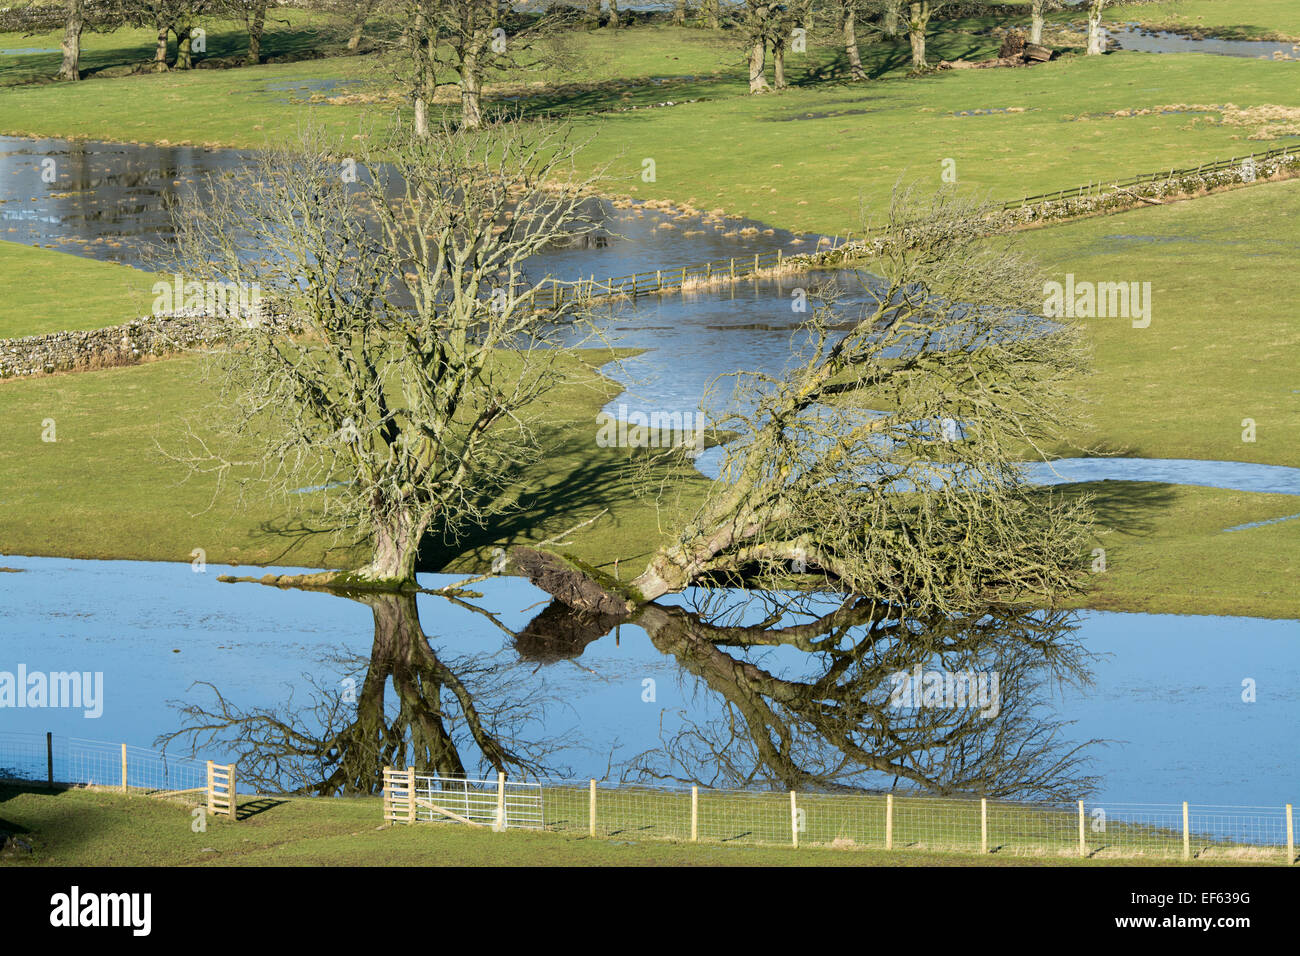 Trees in flooded fields, one fallen down. North Yorkshire, UK - Stock Image